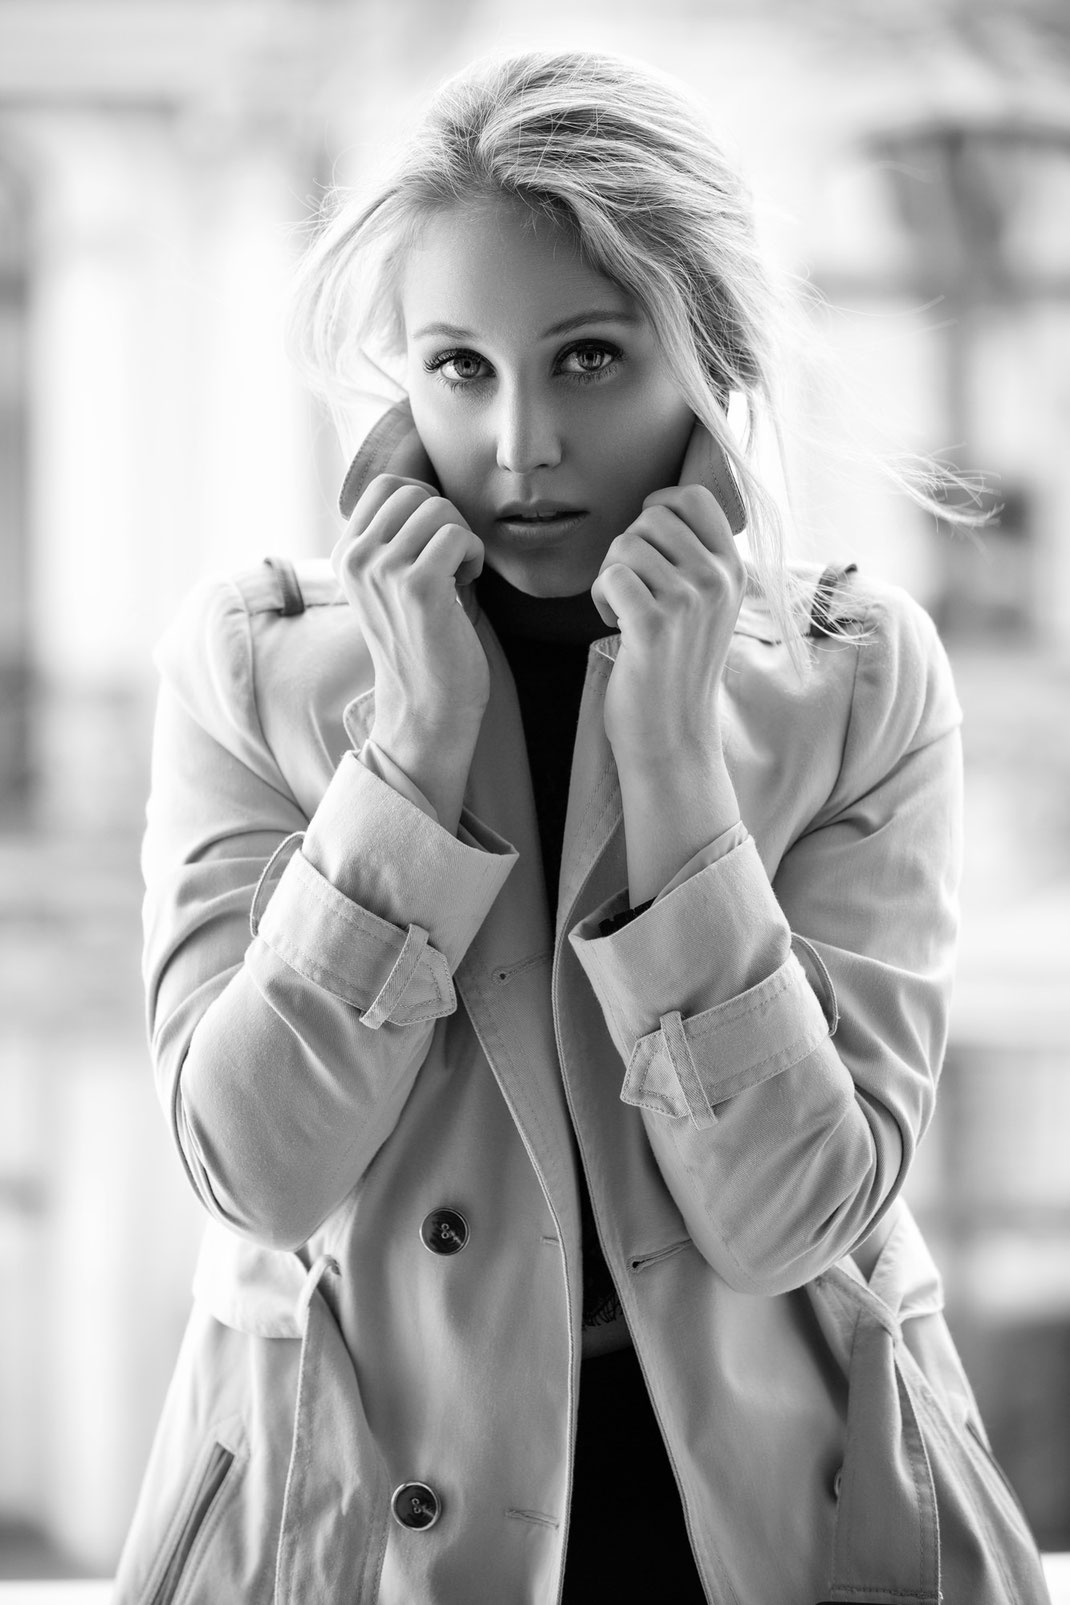 At the Balcony - Antonia - Markus Hertzsch - B&W - Girl - Model - Bildlook - Face - Pose - Art - Hair - Eyes -  Balcony - Blonde - Coat